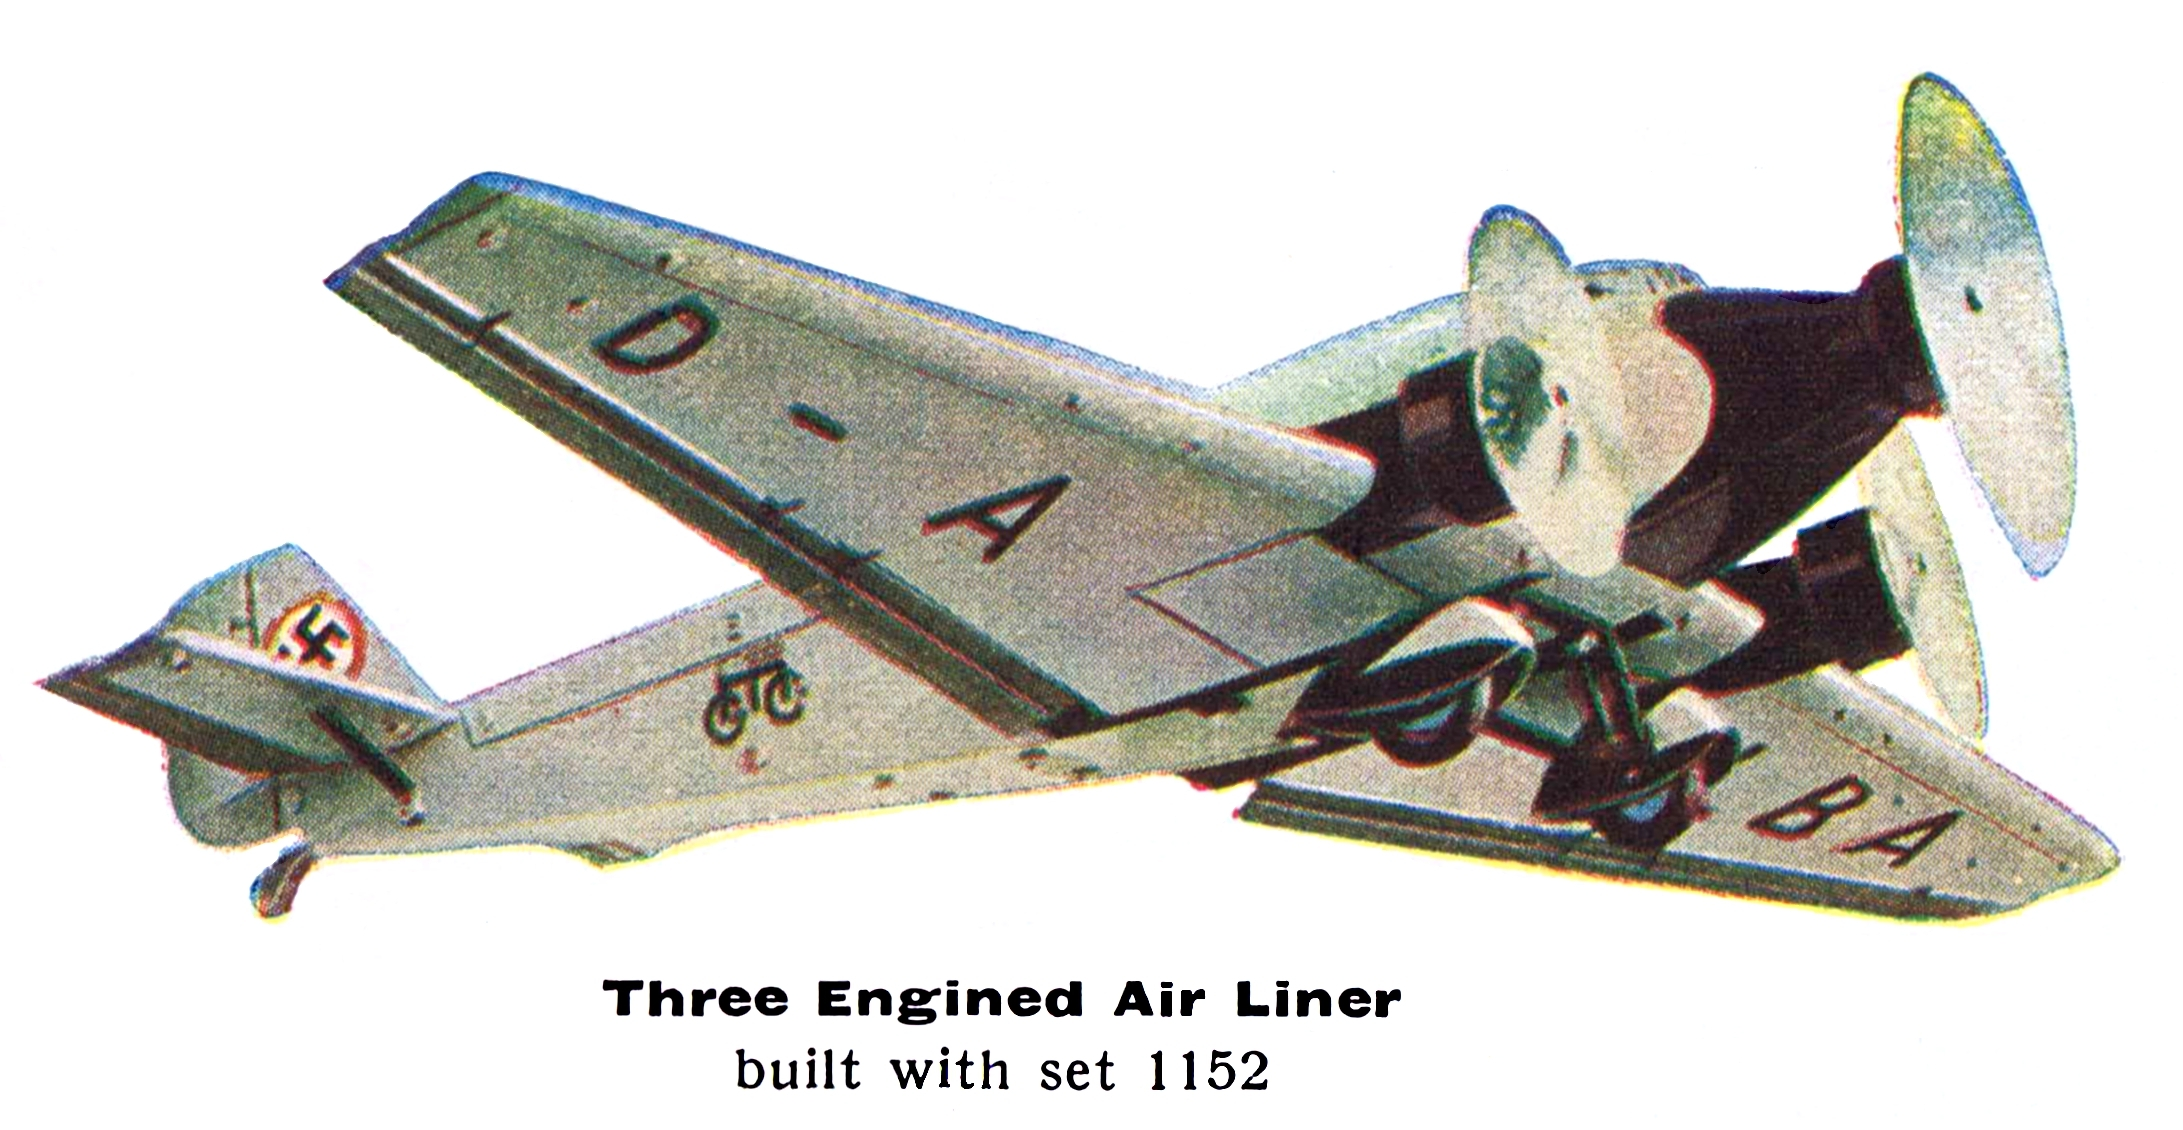 Three Engined Air Liner built with set No.1152, Märklin Aeroplane Construction Sets (edited from Märklin catalogue D13 1936/37)